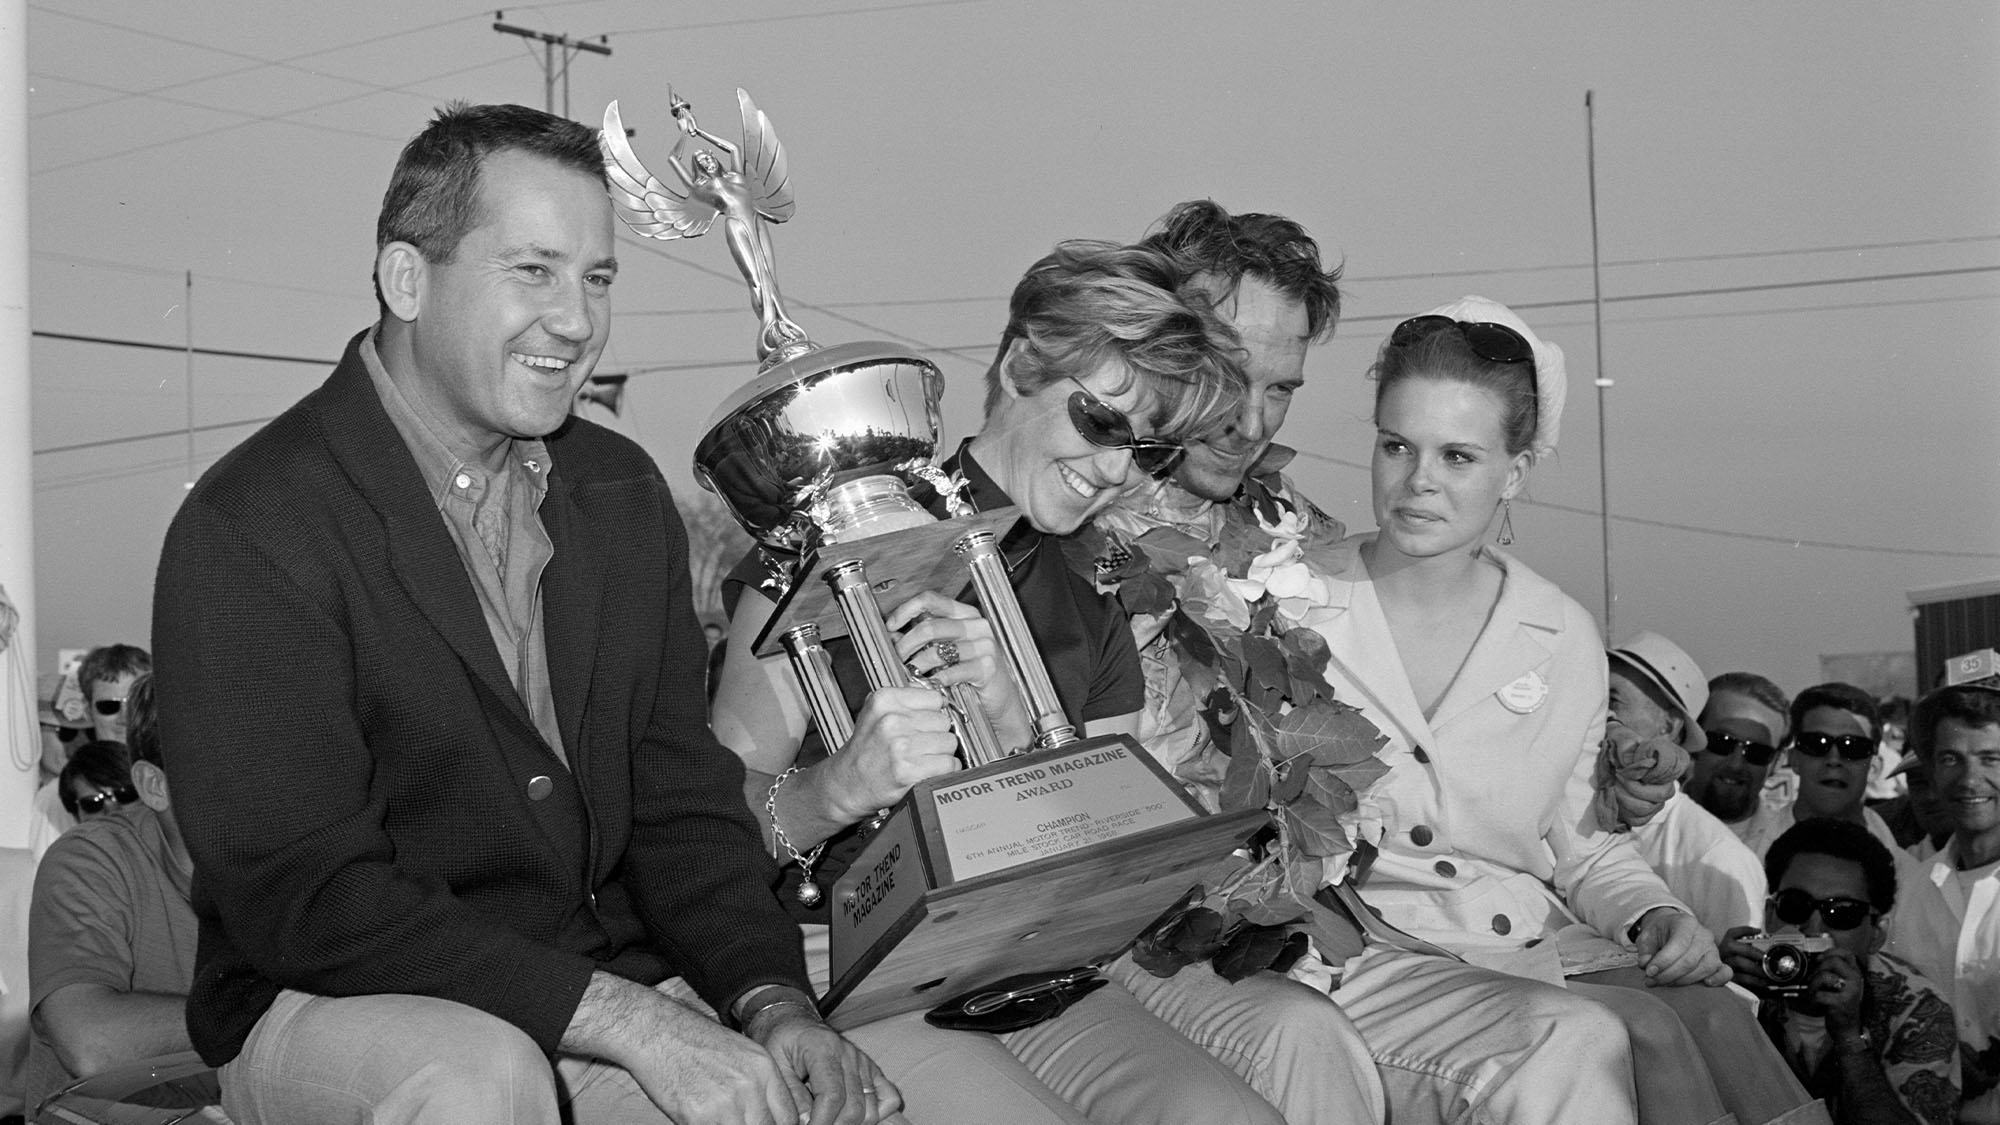 UNITED STATES - JANUARY 22: 1968 Motor Trend 500 - Riverside - NASCAR. Race winner Dan Gurney celebrates his victory with Race queen far right and Petersen Publishing founder Robert E. Petersen (left). (Photo by Eric Rickman/The Enthusiast Network via Getty Images/Getty Images)